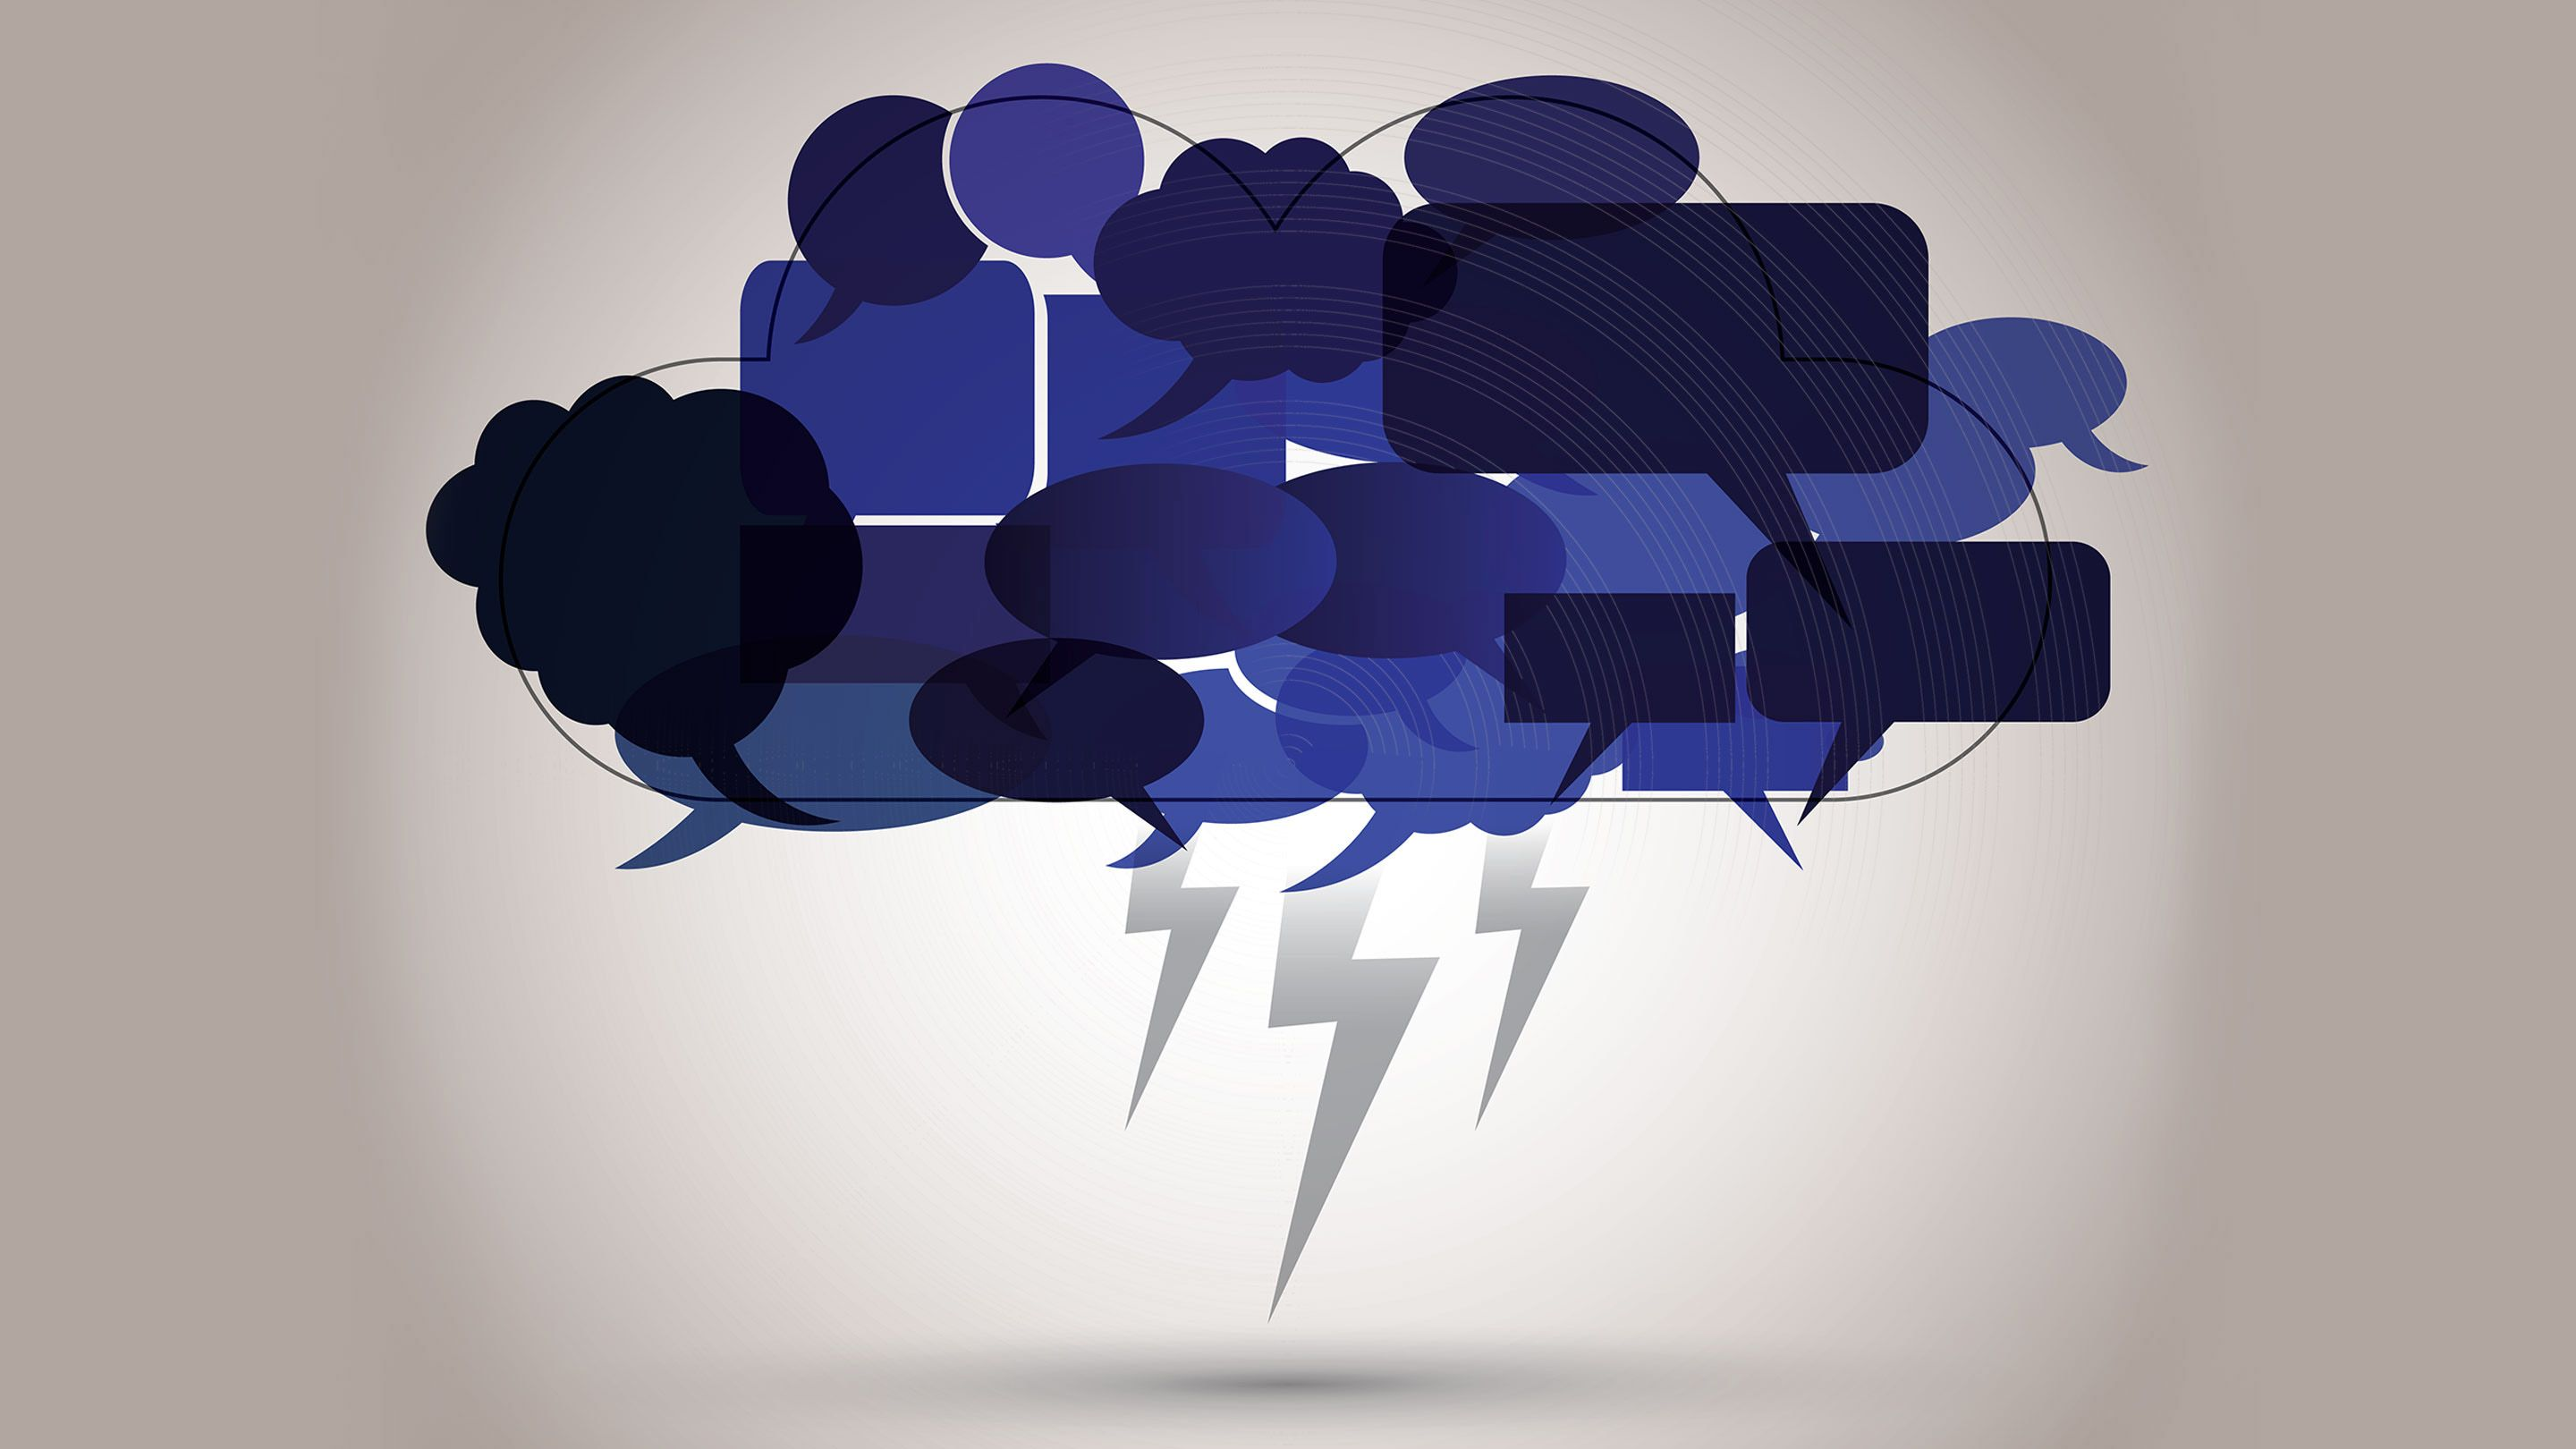 An illustration of a cluster of angry speech bubbles.